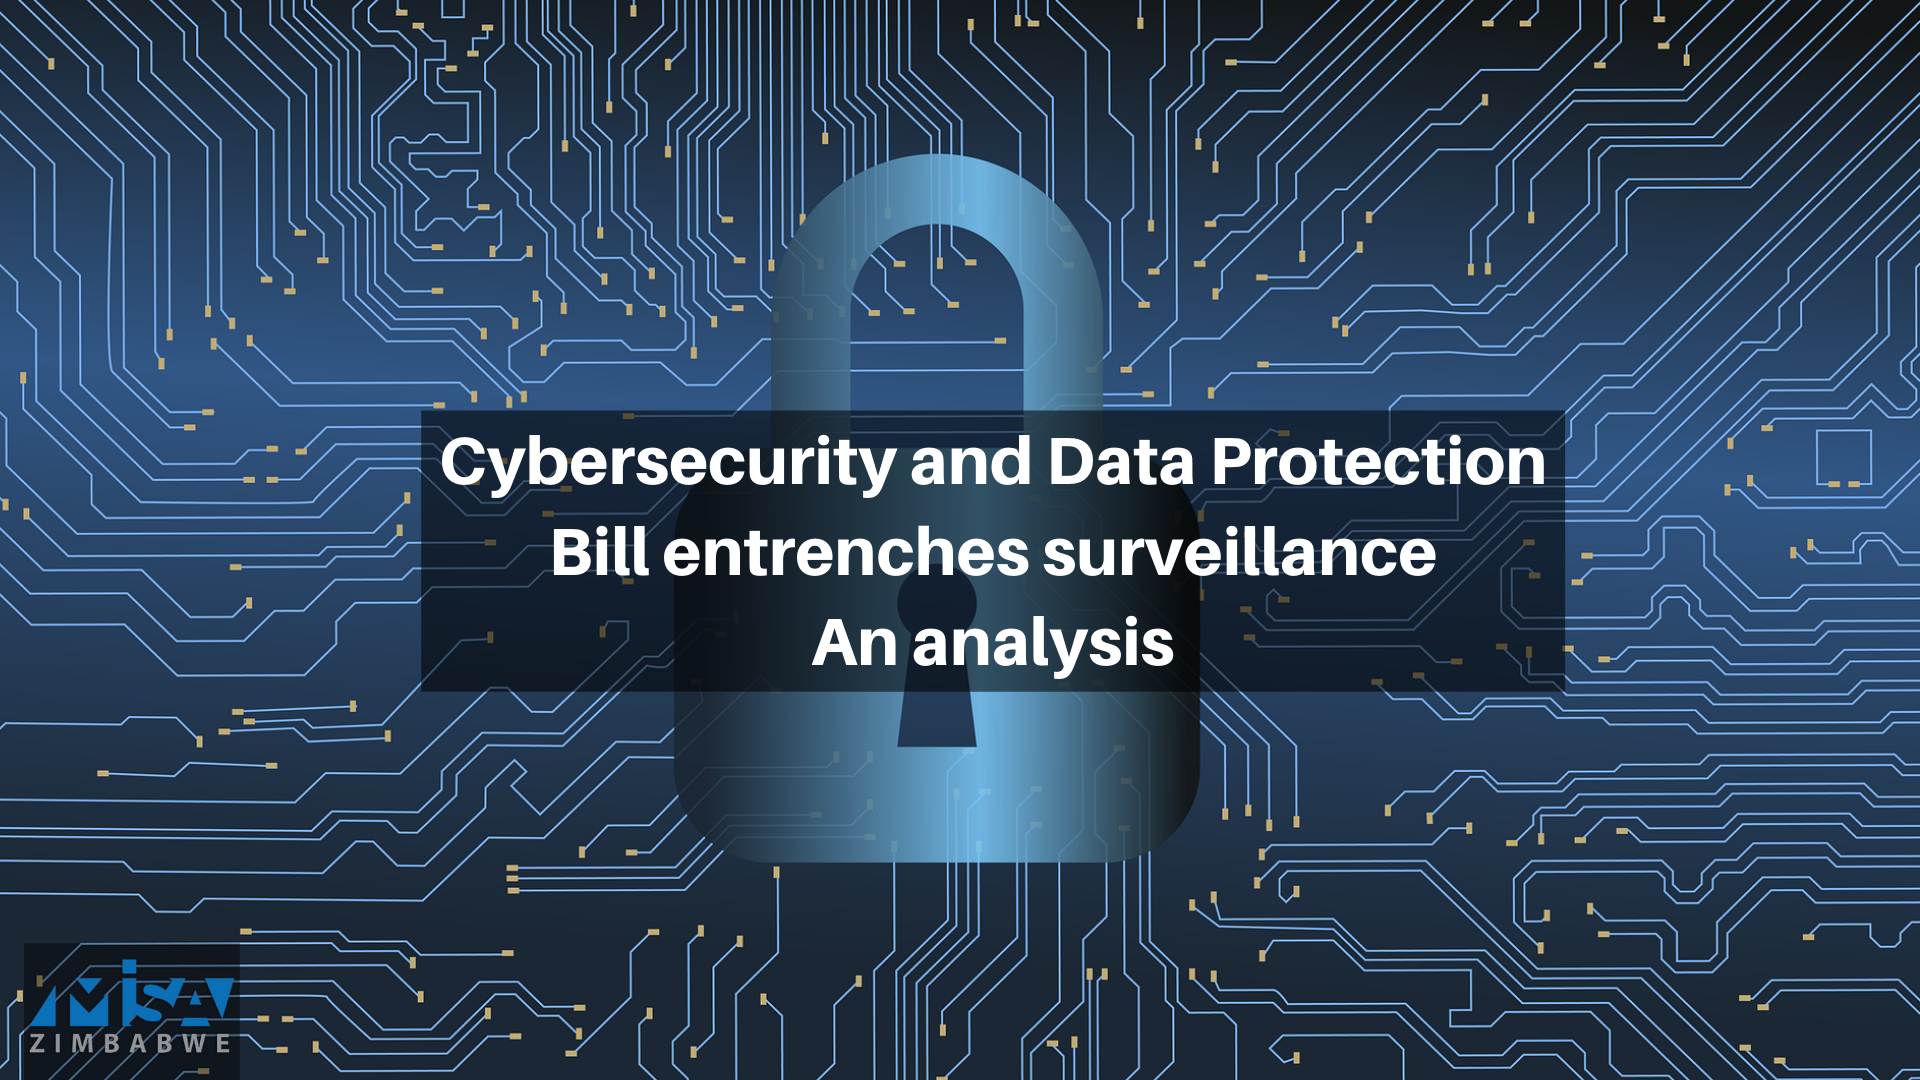 Cybersecurity and Data Protection Bill entrenches surveillance